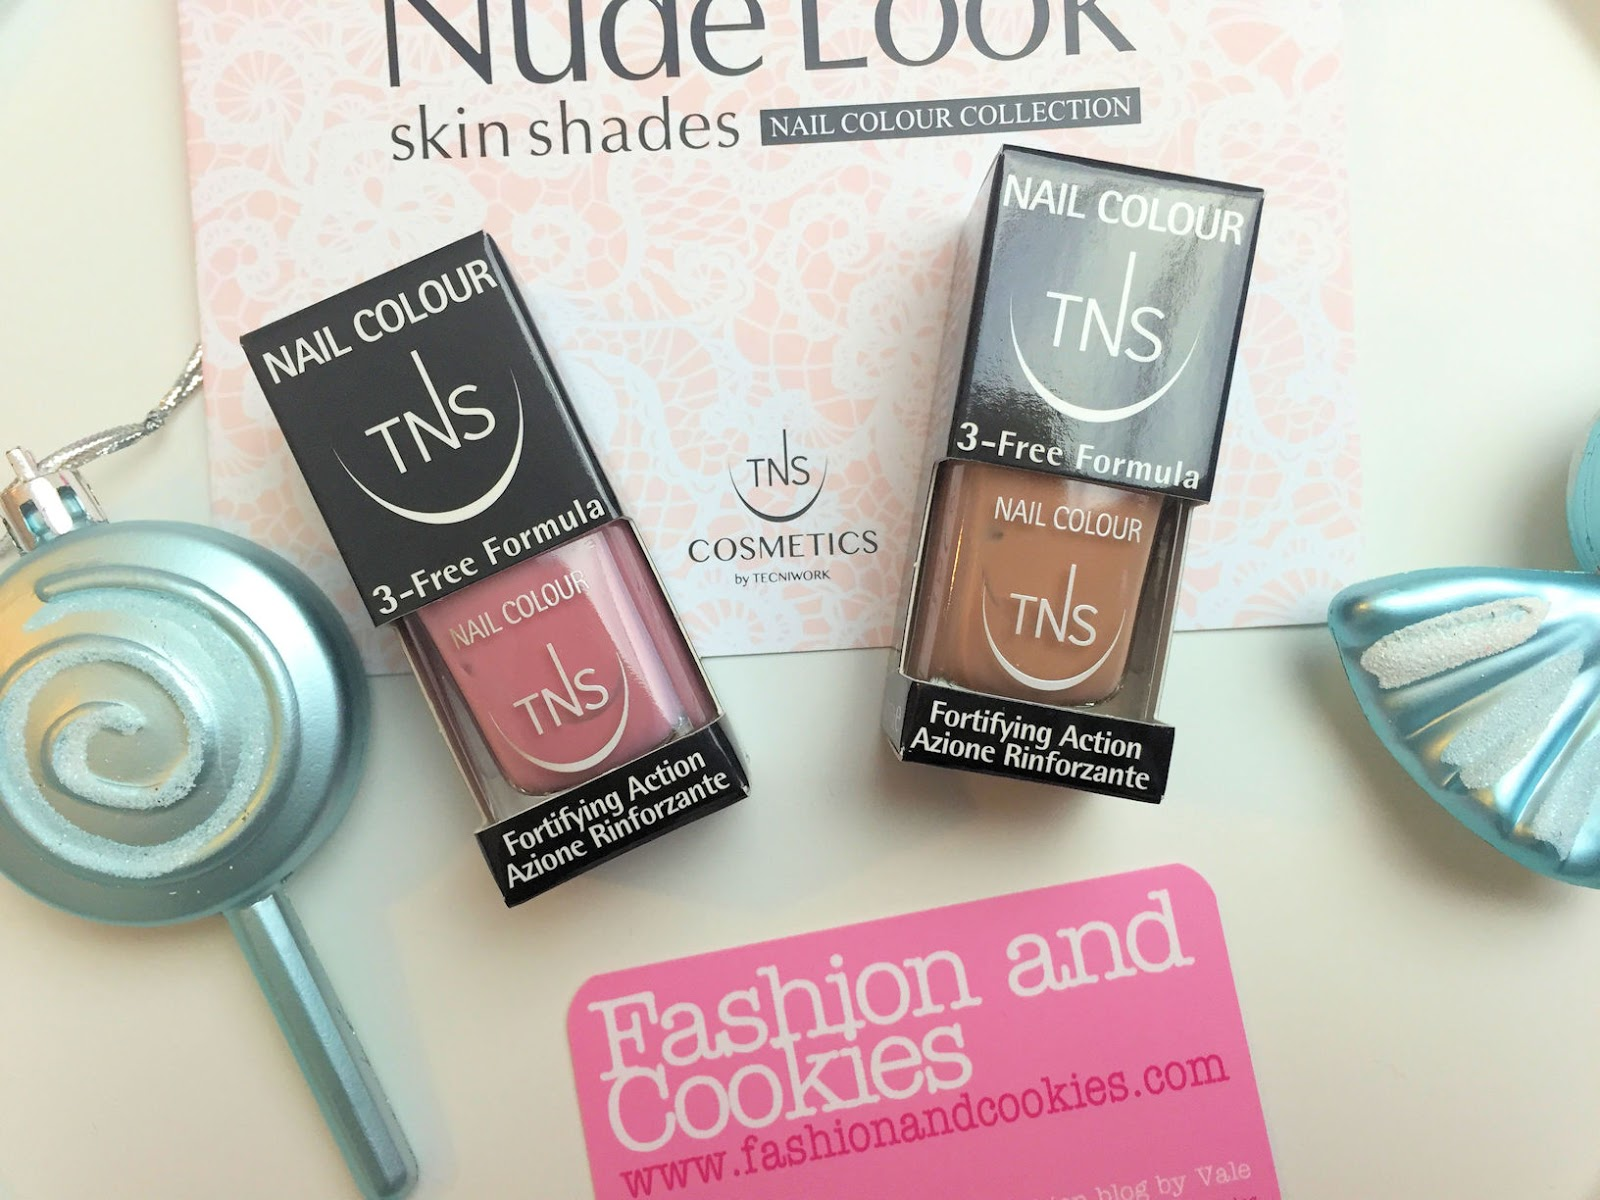 Nude Look skin shades nail polish collection by TNS Cosmetics on Fashion and Cookies beauty blog, beauty blogger review